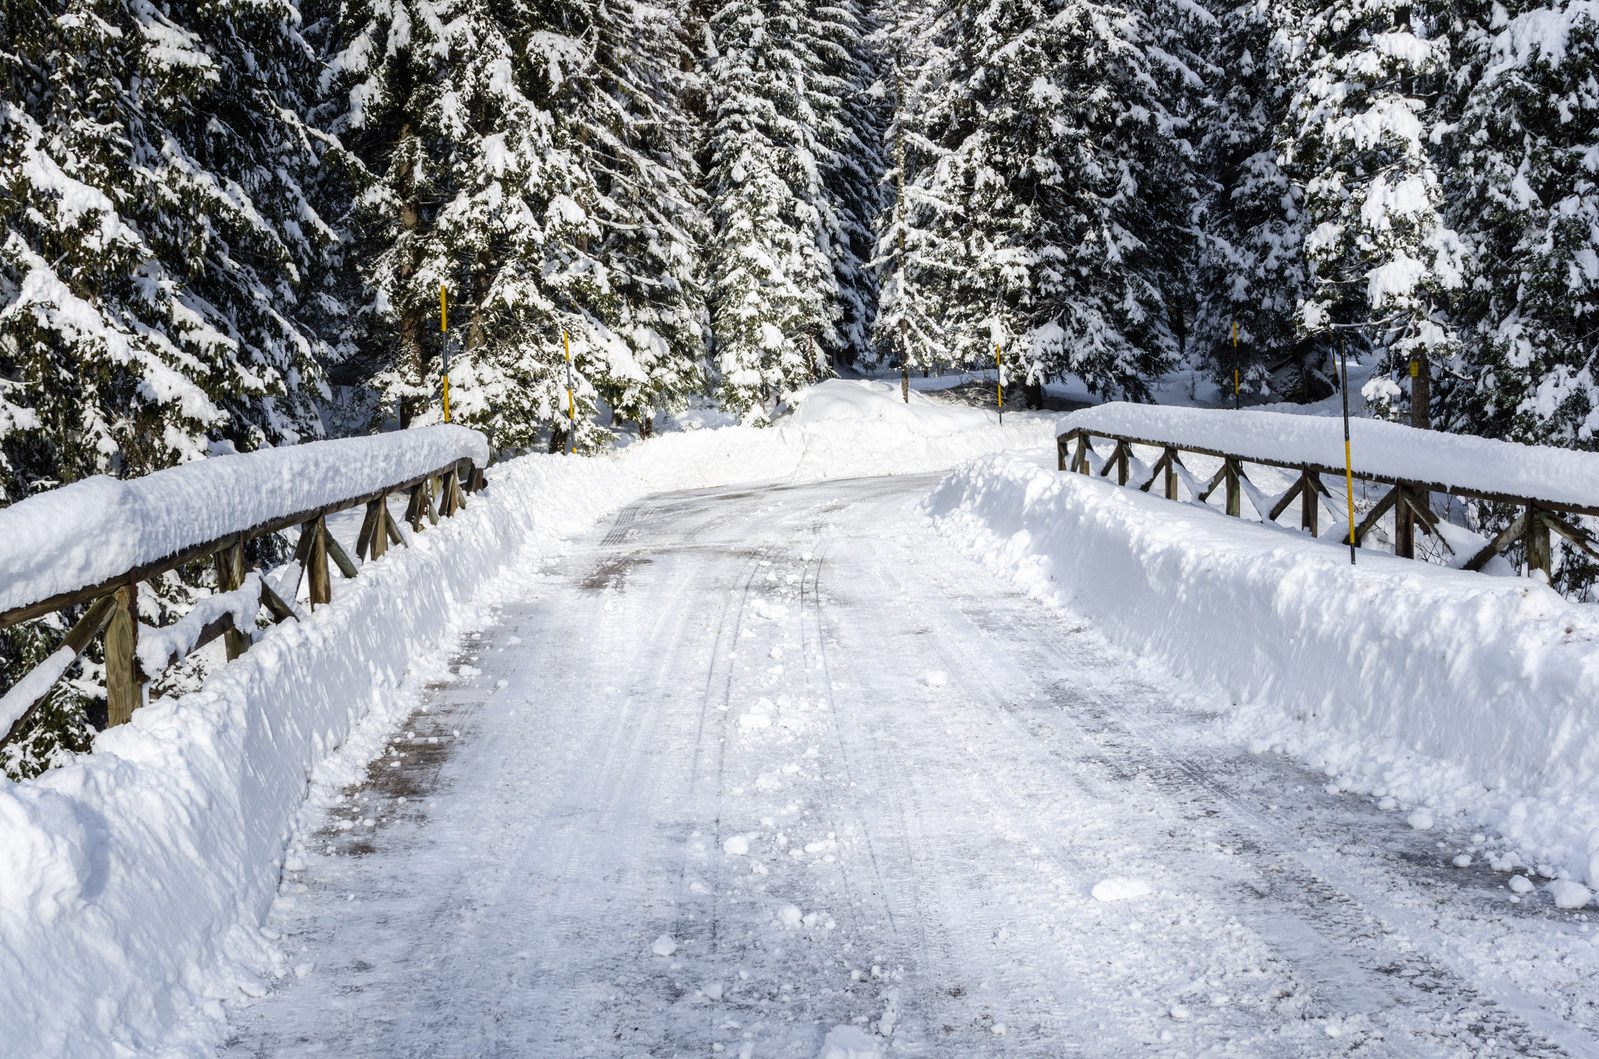 This winter season, Erie Insurance offers helpful tips on what to do if you have a run in with black ice. (PRNewsfoto/Erie Insurance)